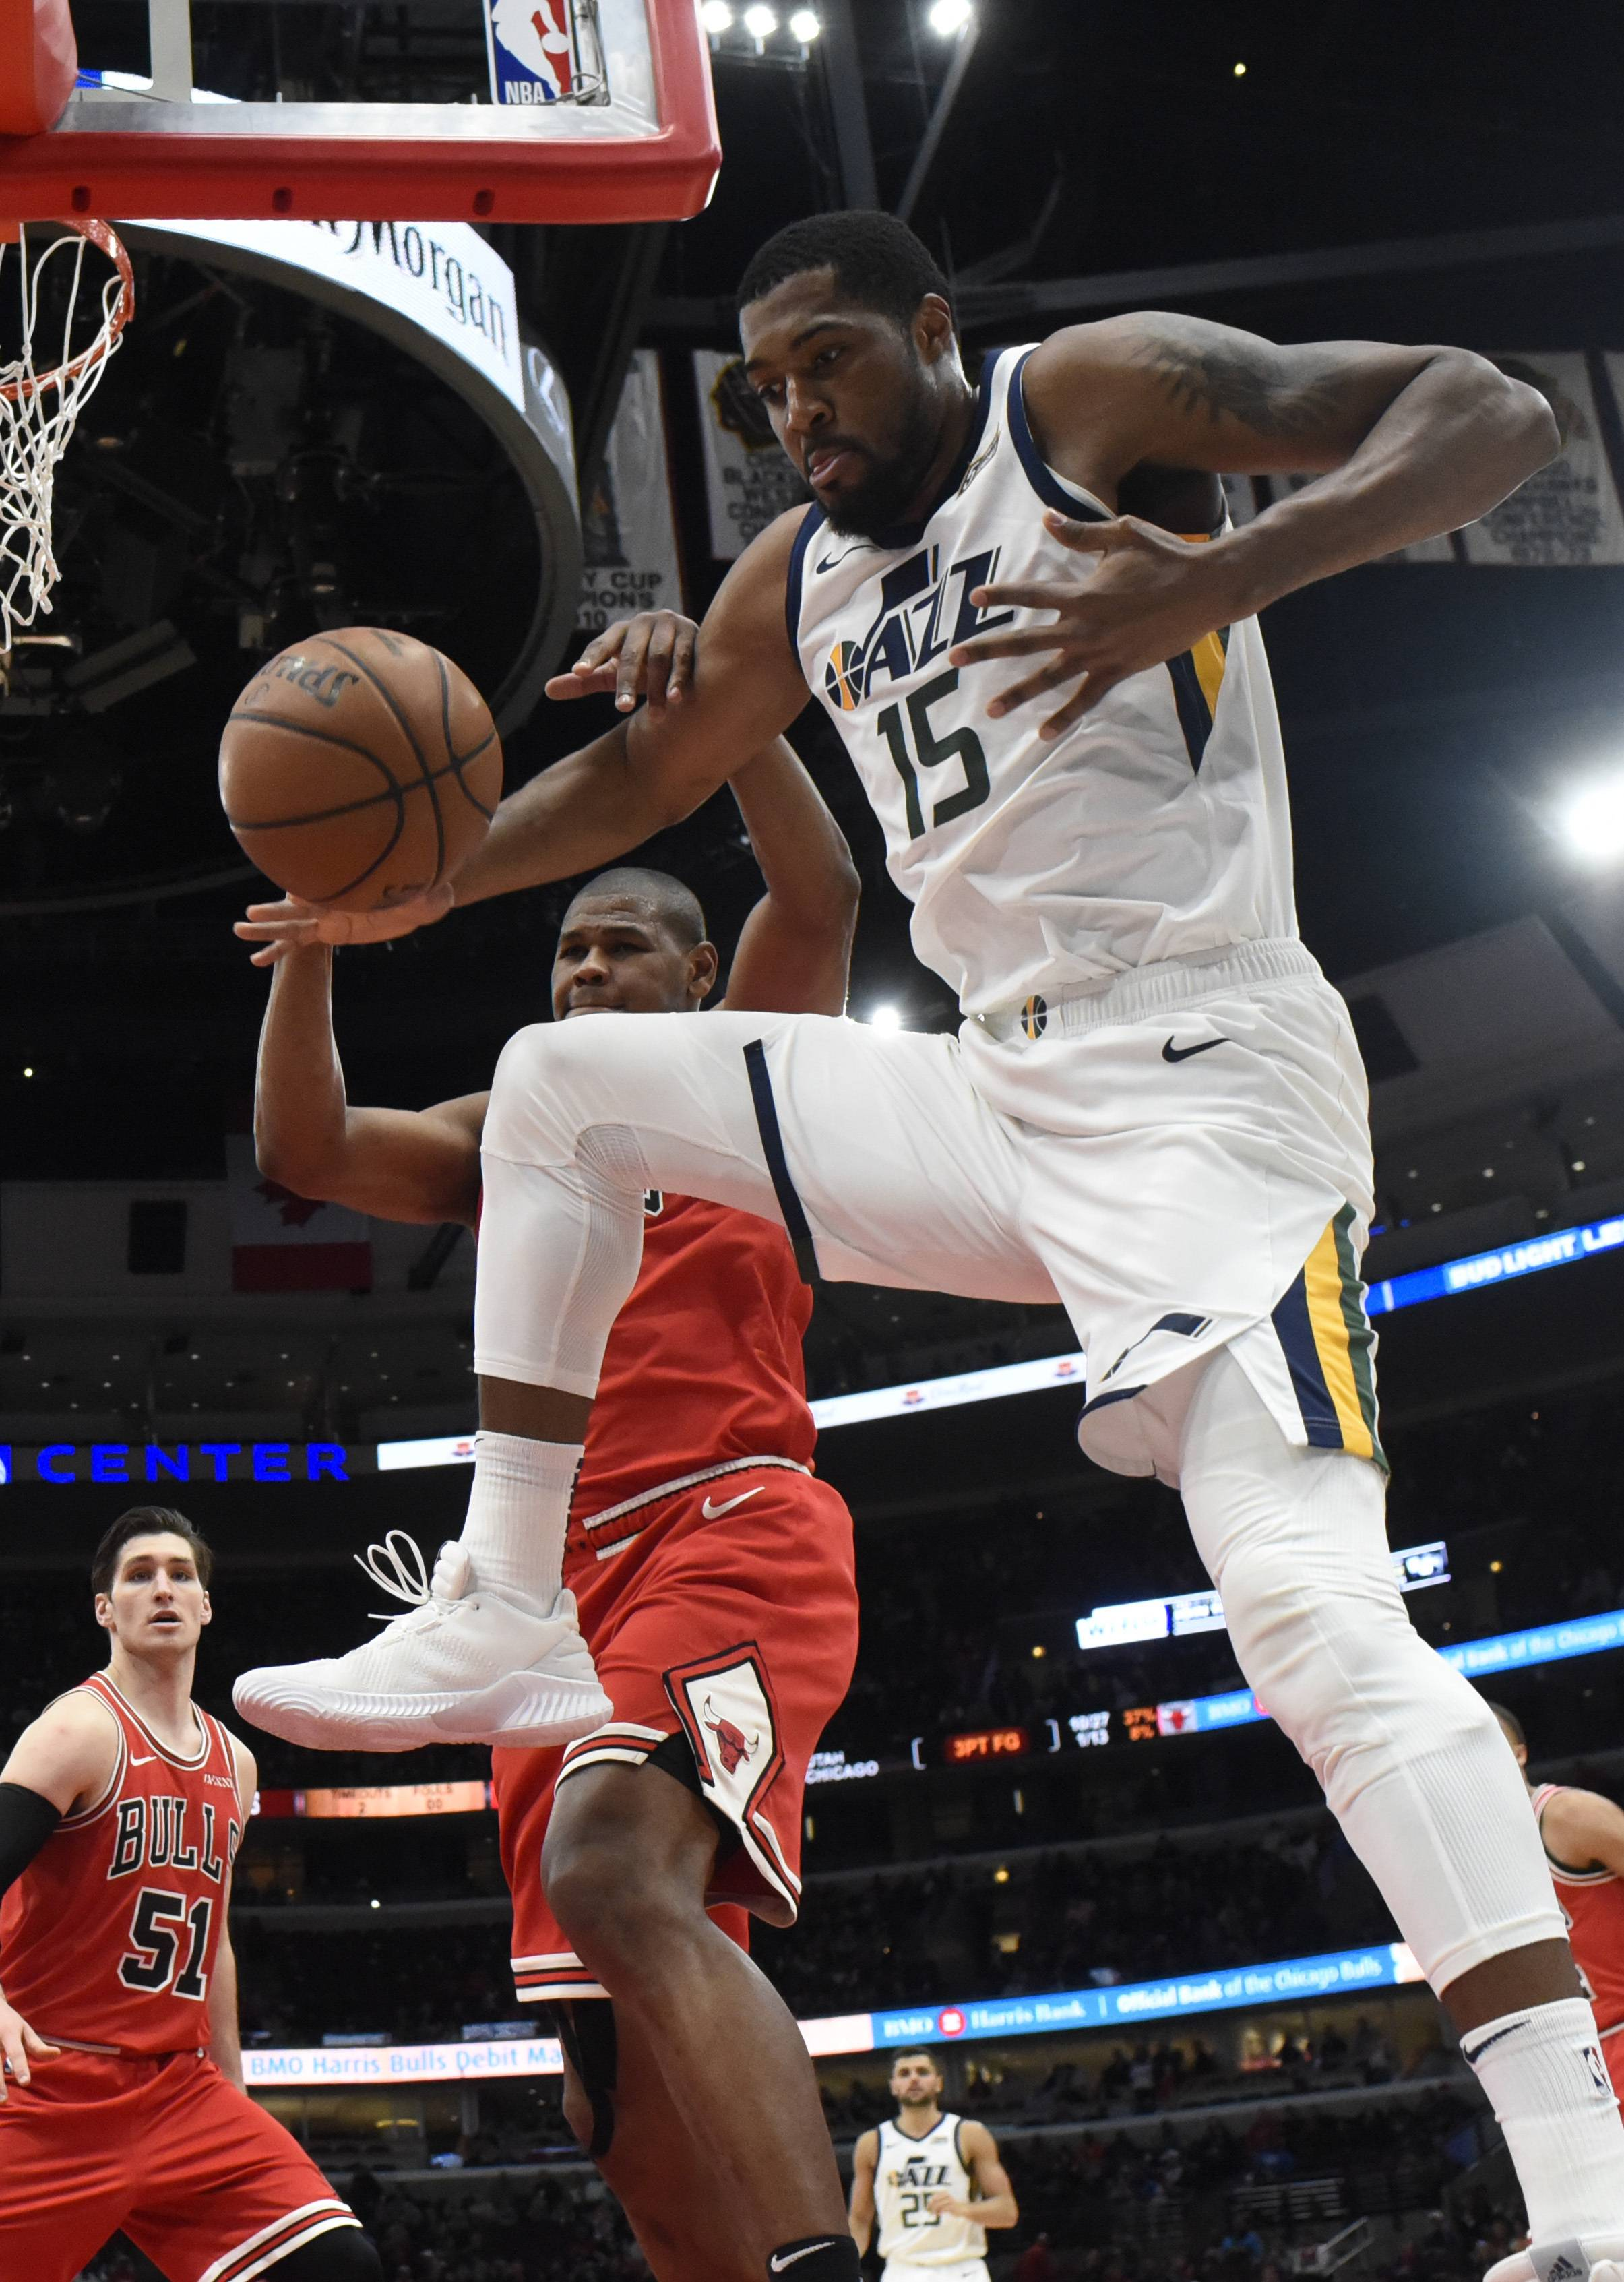 Utah Jazz forward Derrick Favors (15) and Chicago Bulls forward Cristiano Felicio (6) go for a lose ball during the second half of an NBA basketball game Saturday, March 23, 2019, in Chicago. The Jazz won 114-83. (AP Photo/David Banks)